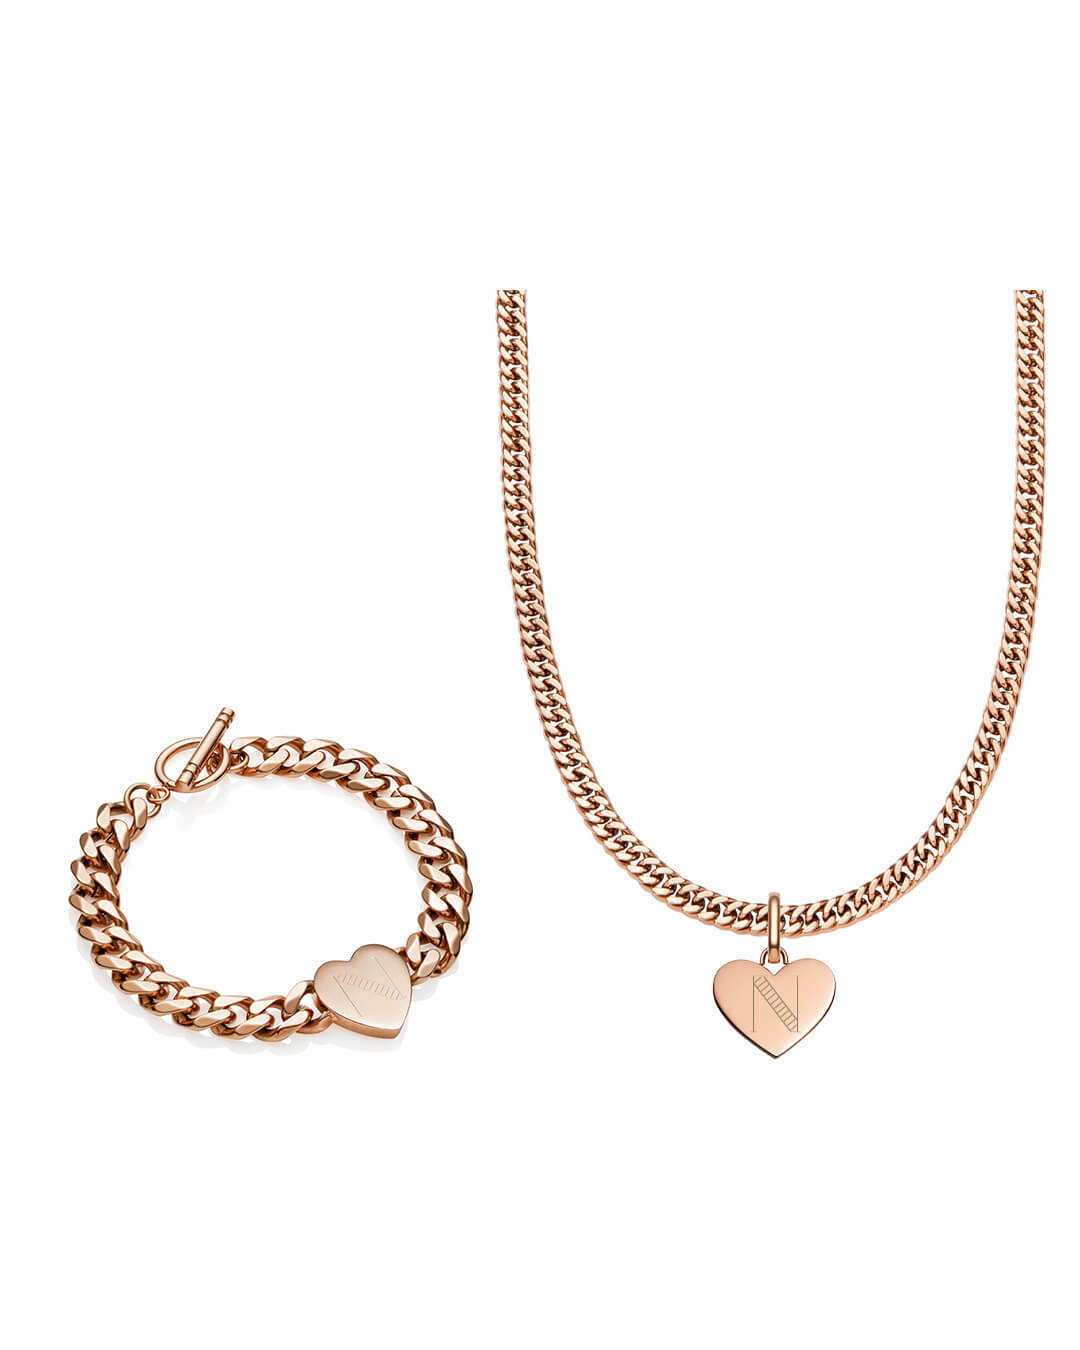 Heart Curb Chain Necklace & Bracelet Gift Set (Rose Gold)